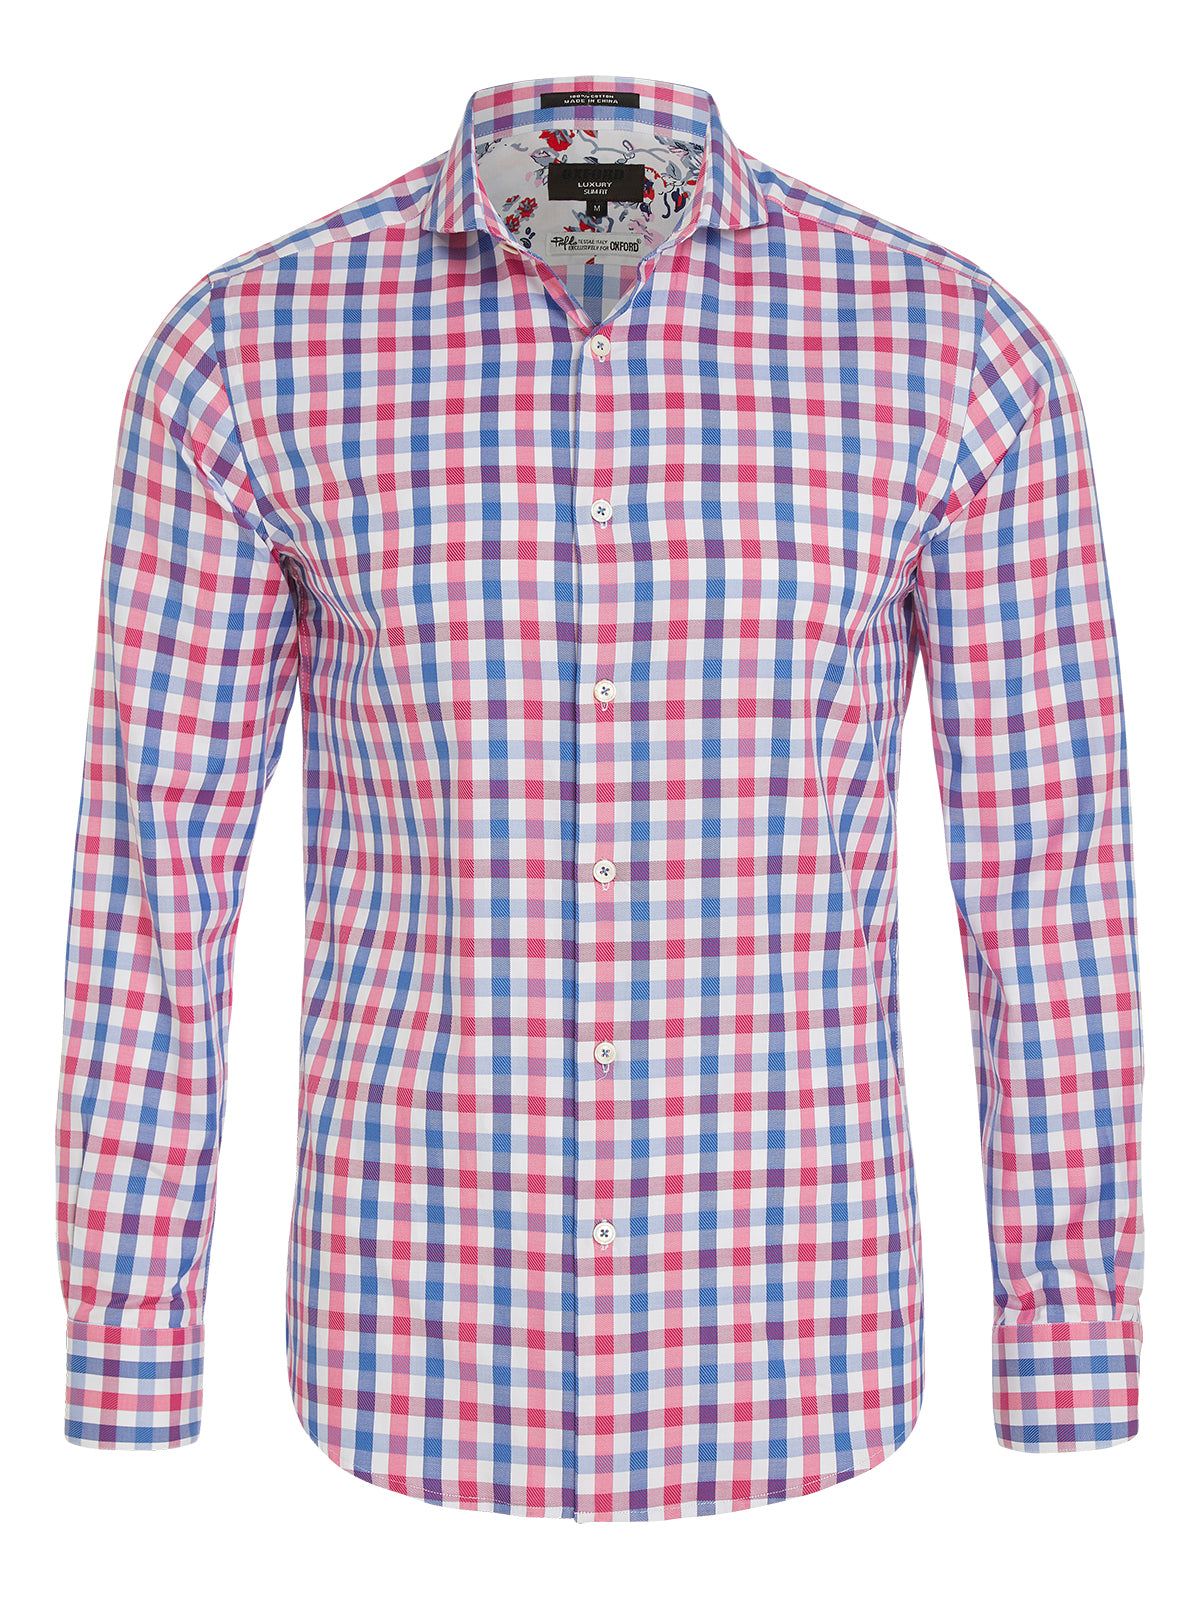 KENSINGTON LUXURY SHIRT PINK/BLUE